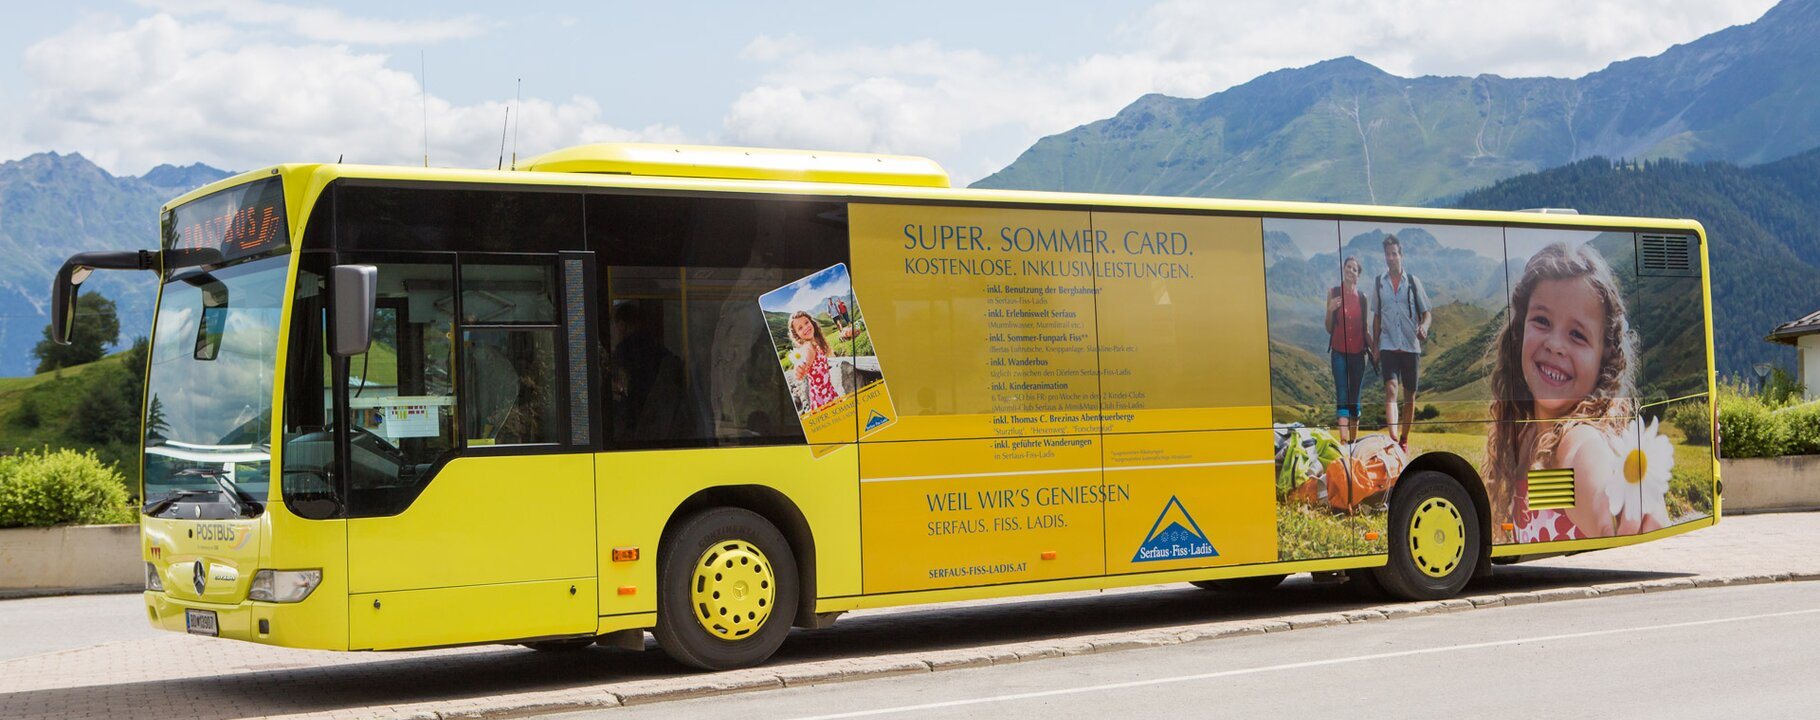 The hiker's bus in Serfaus-Fiss-Ladis in Tyrol | © Andreas Kirschner